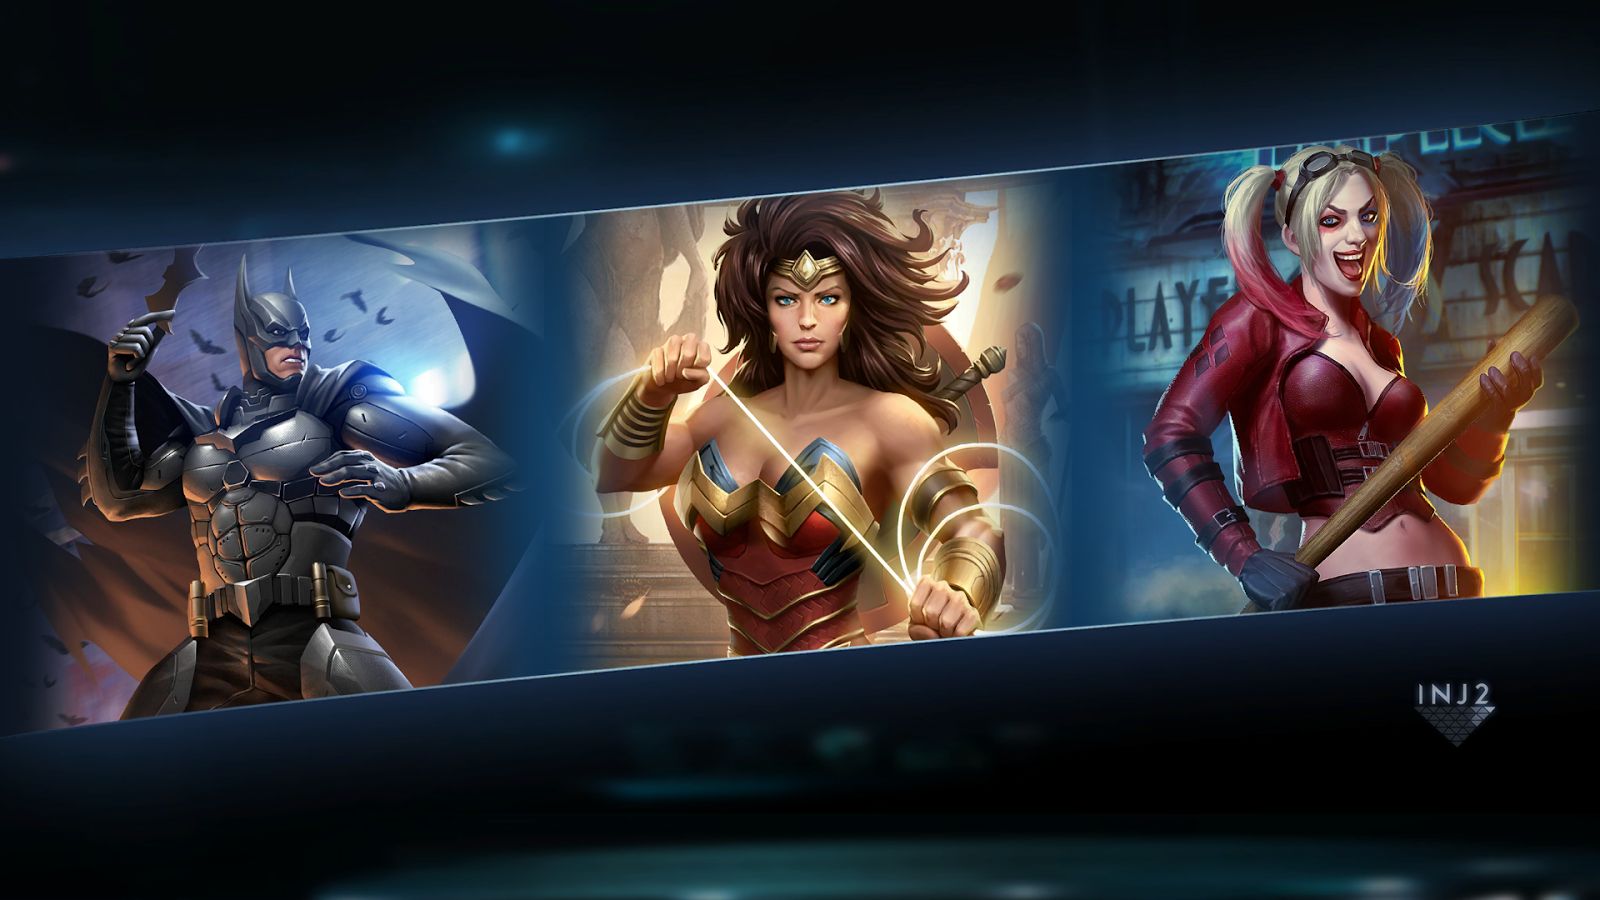 Your first silver team : An injustice 2 mobile guide